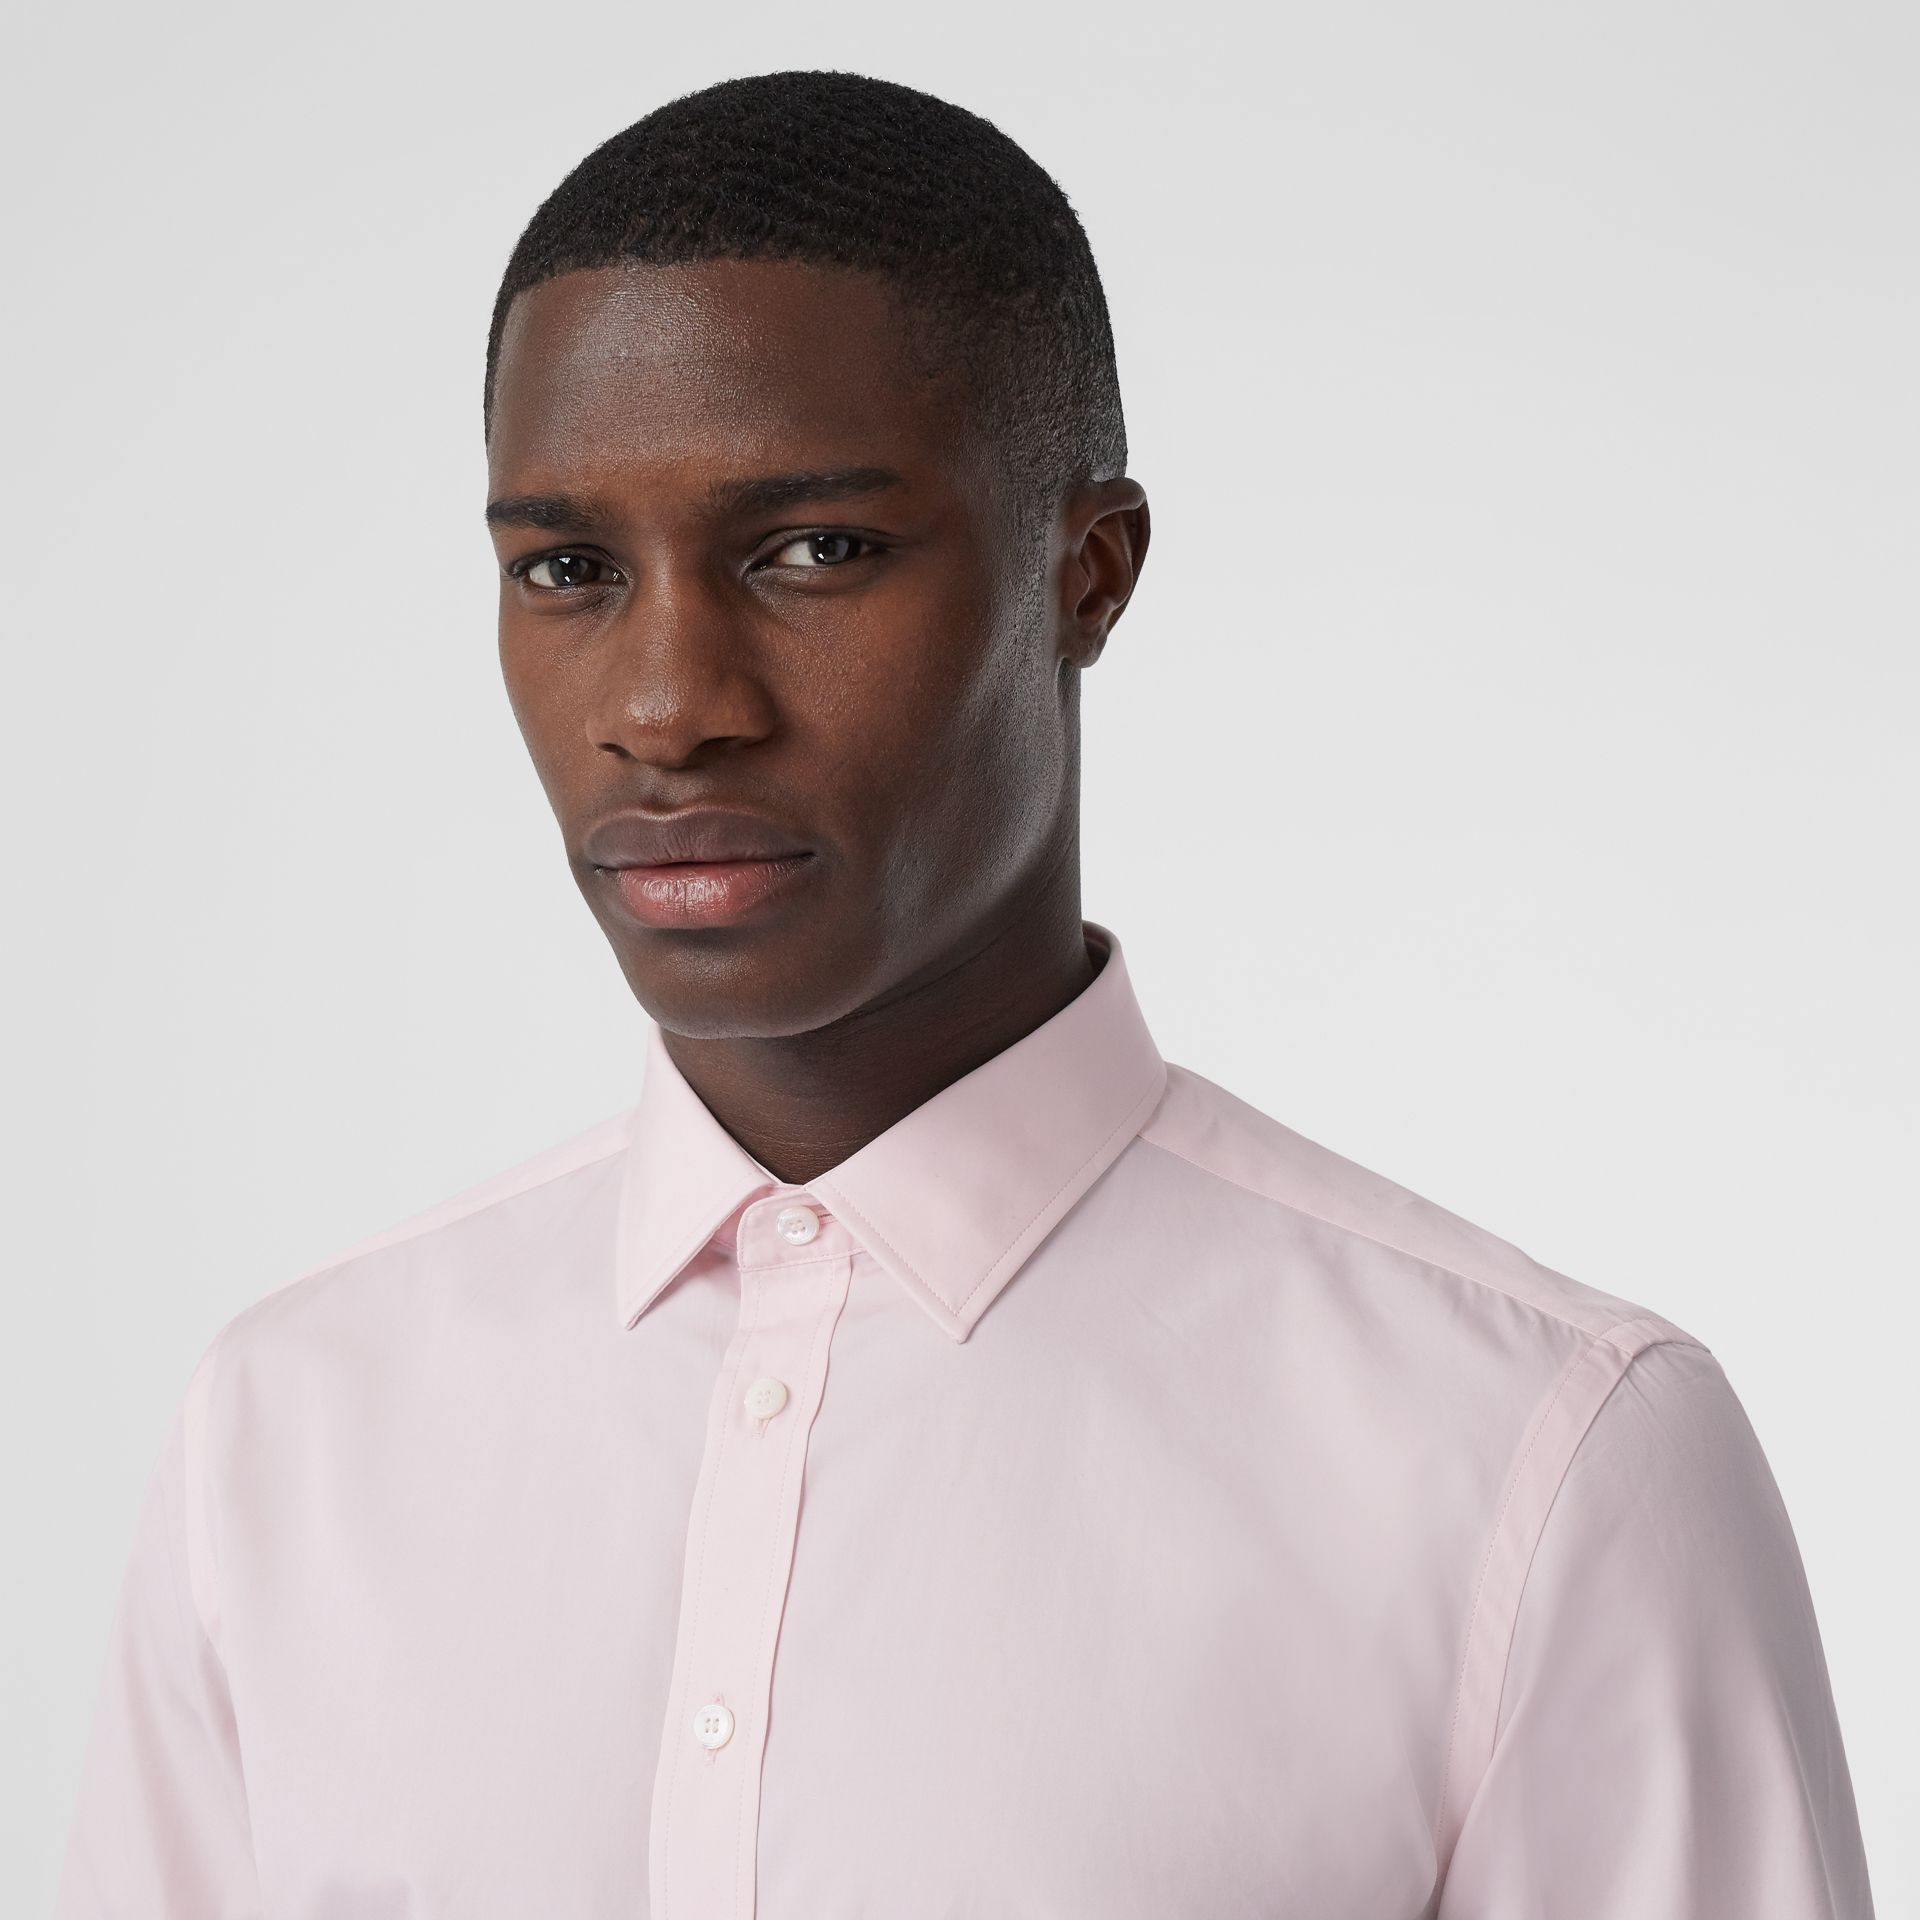 Slim Fit Monogram Motif Cotton Poplin Shirt in Alabaster Pink - Men | Burberry - gallery image 1